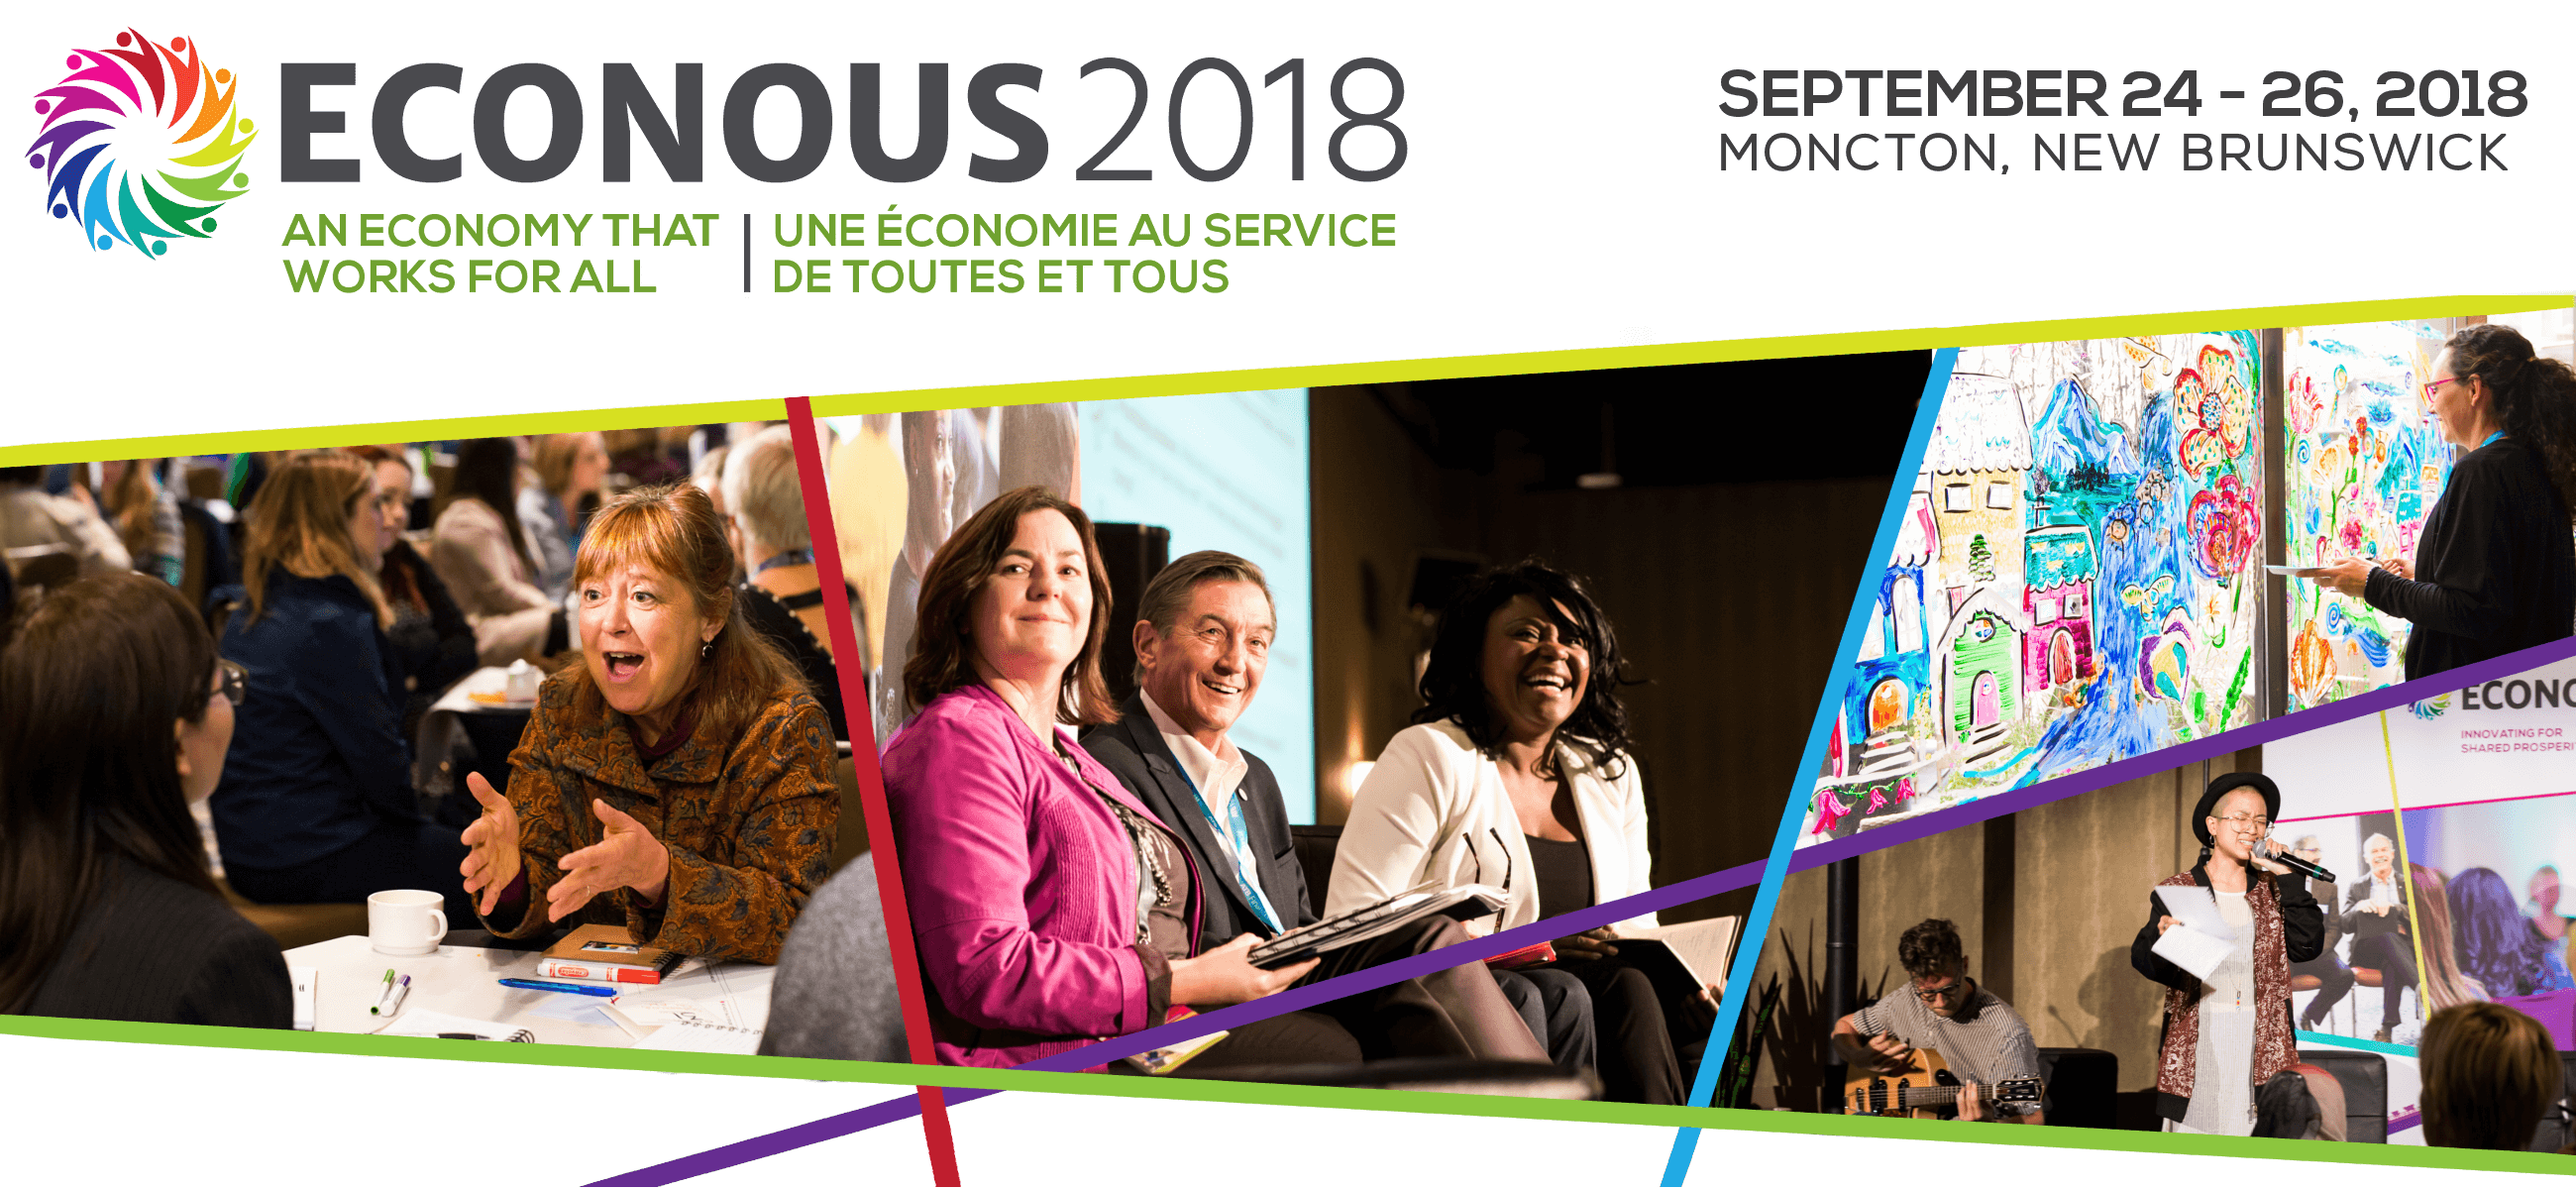 EconoUs2018: An Economy that Works for All (September 24-26, 2018 | Moncton, NB)